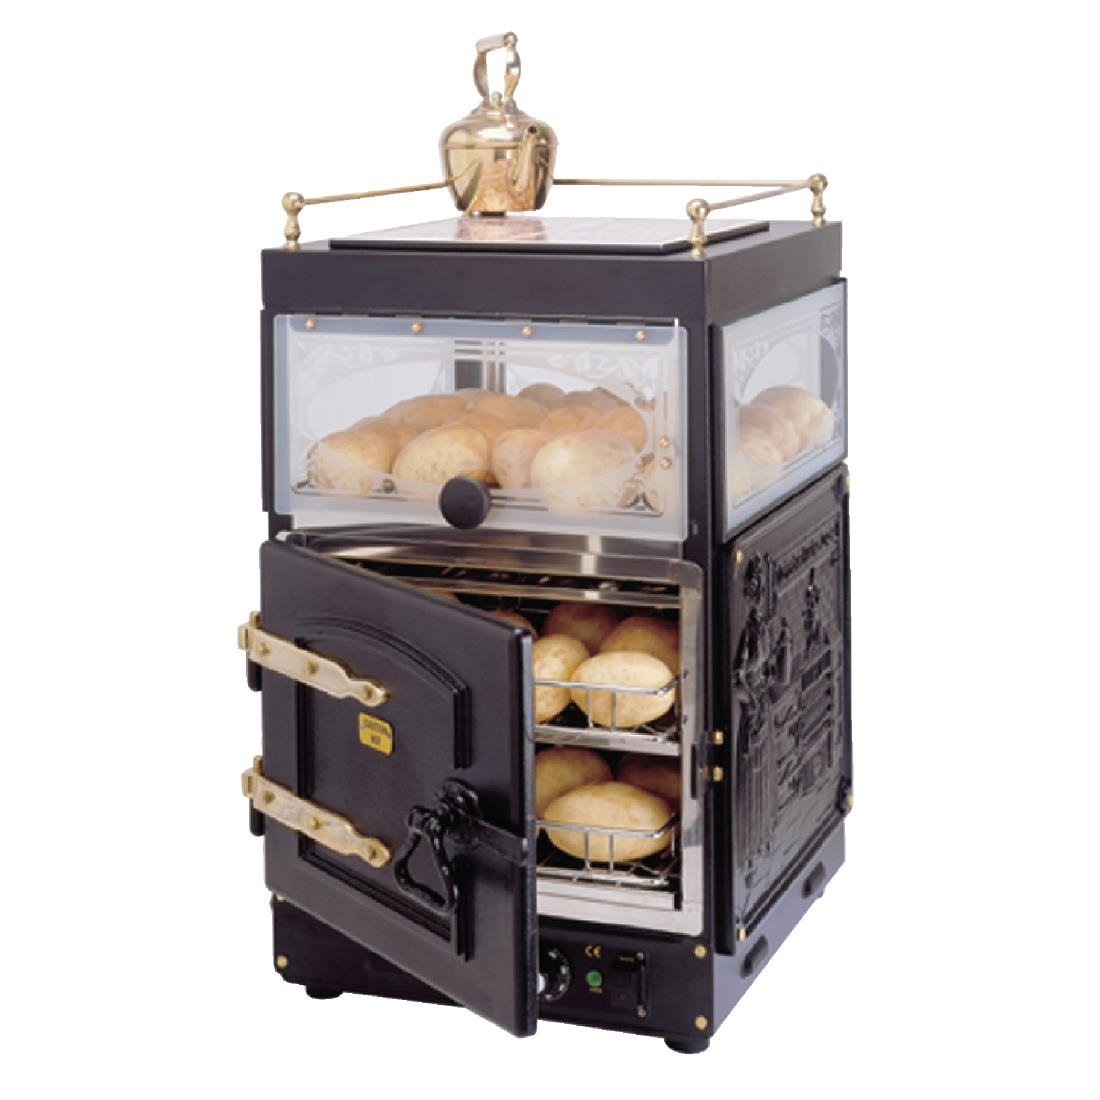 Queen Victoria Potato Oven